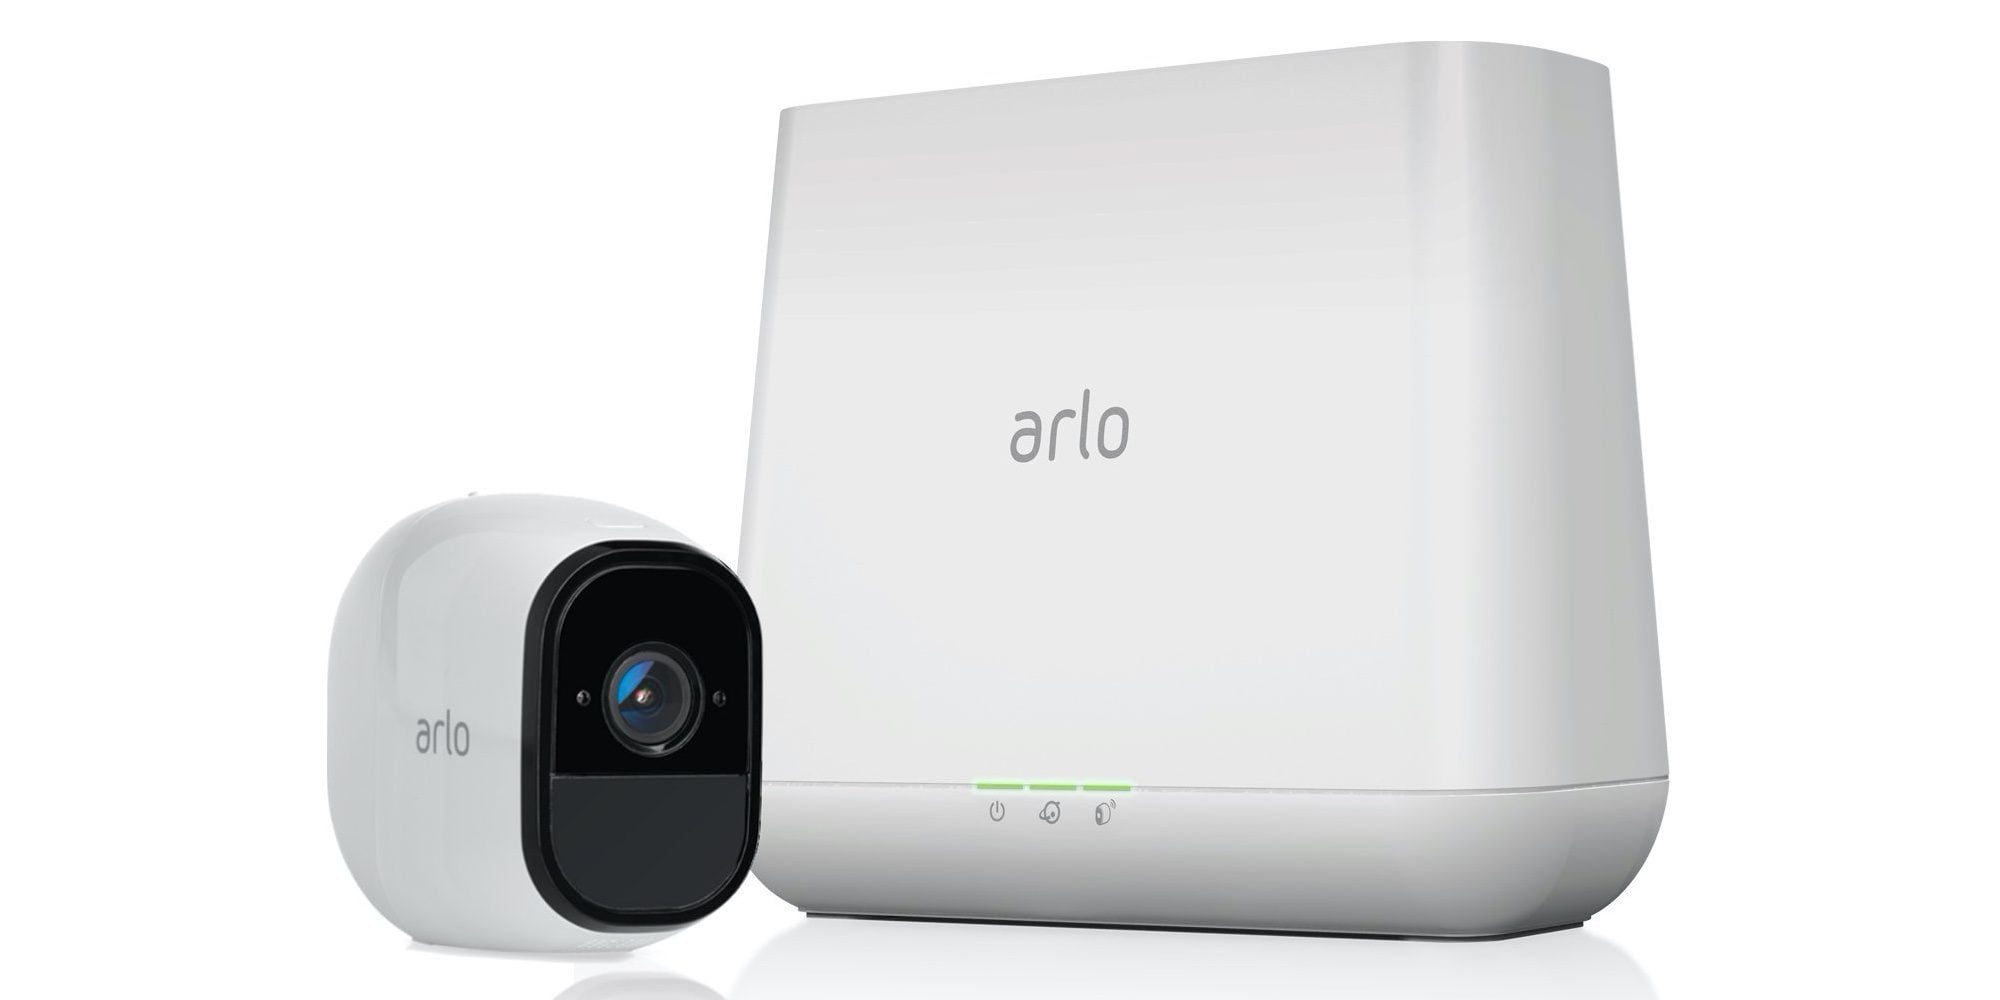 Arlo's Pro 1-camera security system works with HomeKit at $120 (Save 20%)